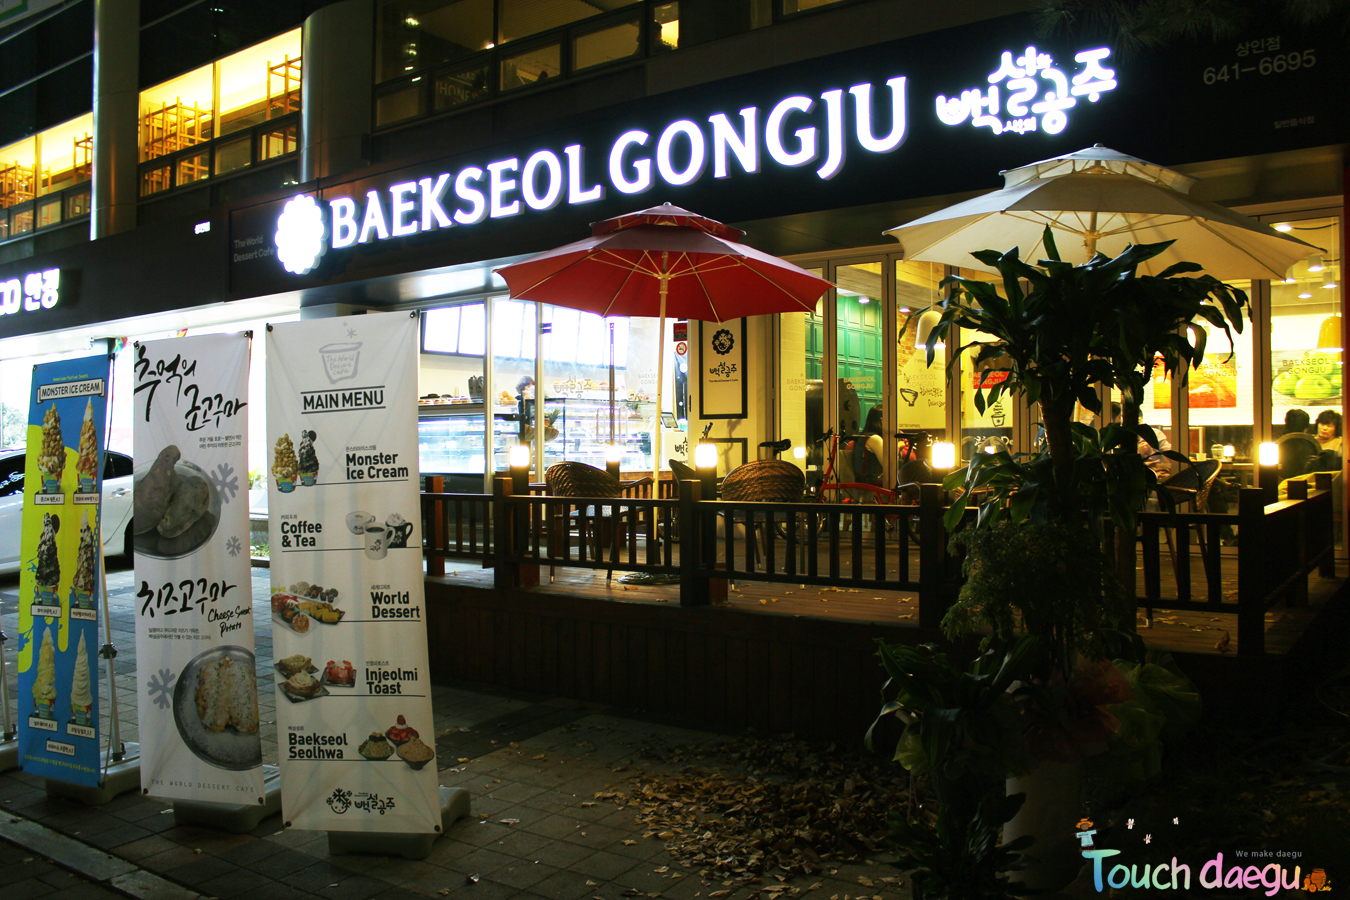 The front door of Bekseol Gongju Cafe